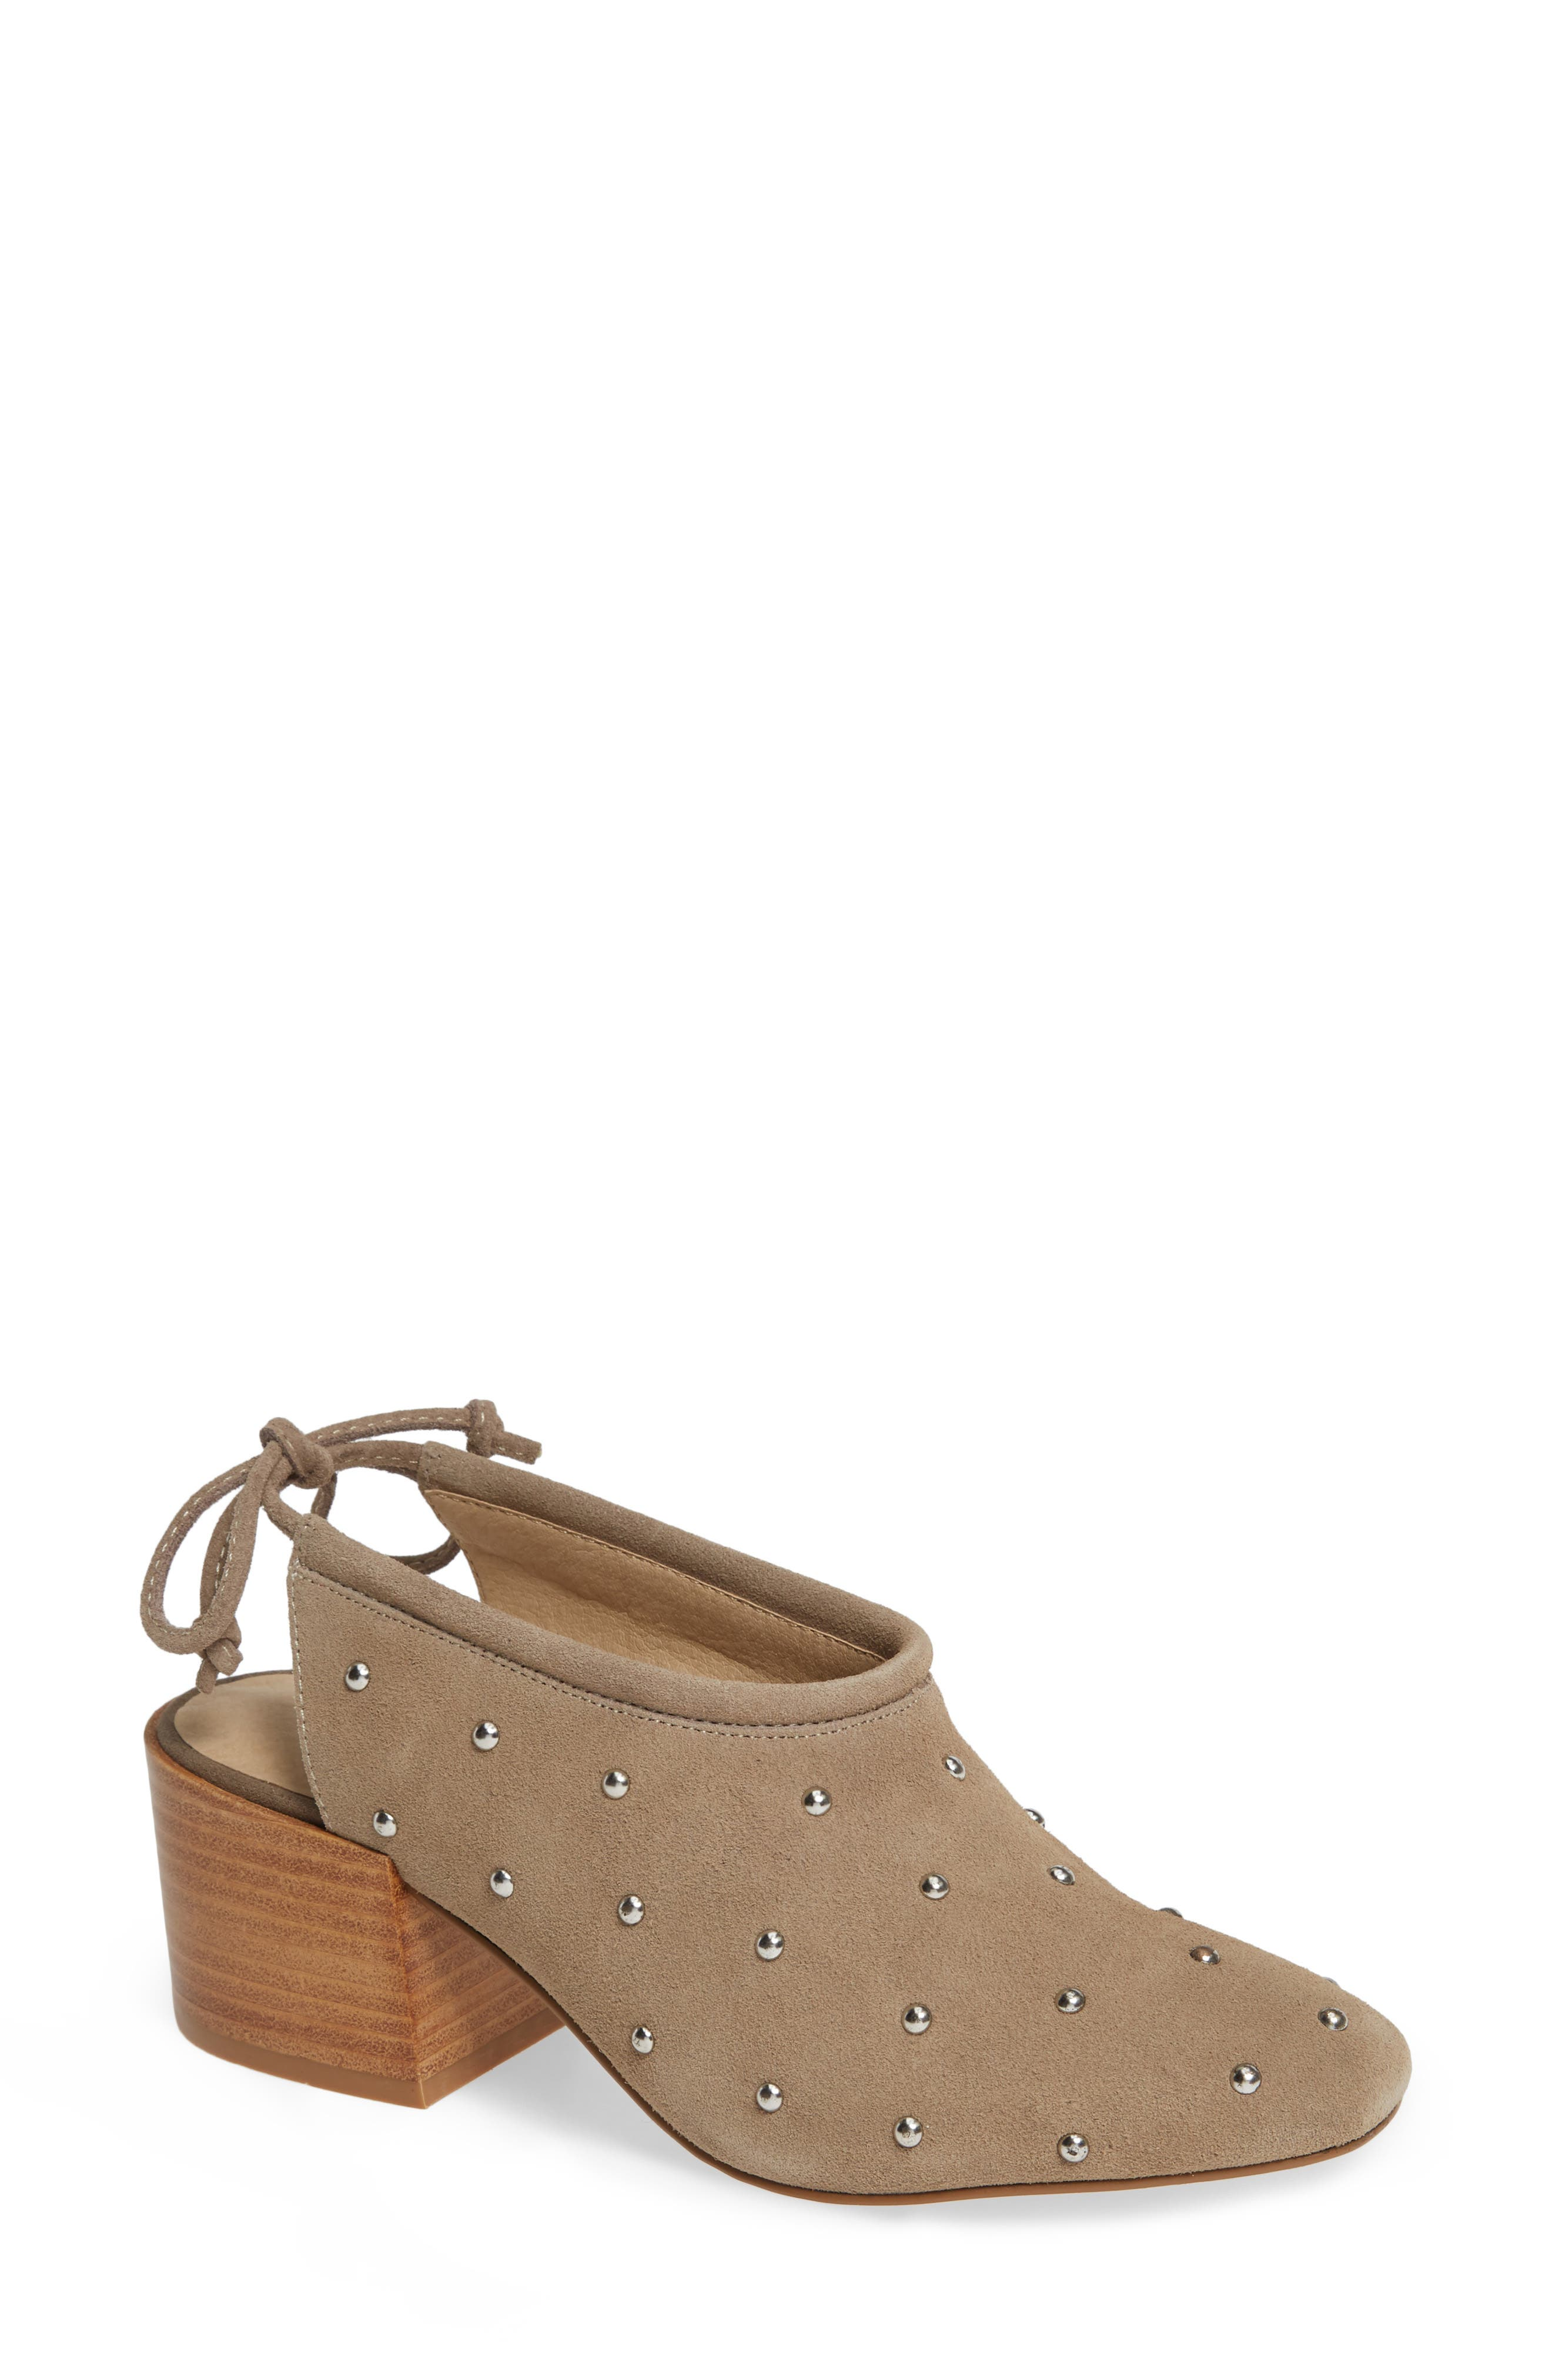 SBICCA Janette Block Heel Pump, Main, color, STONE LEATHER